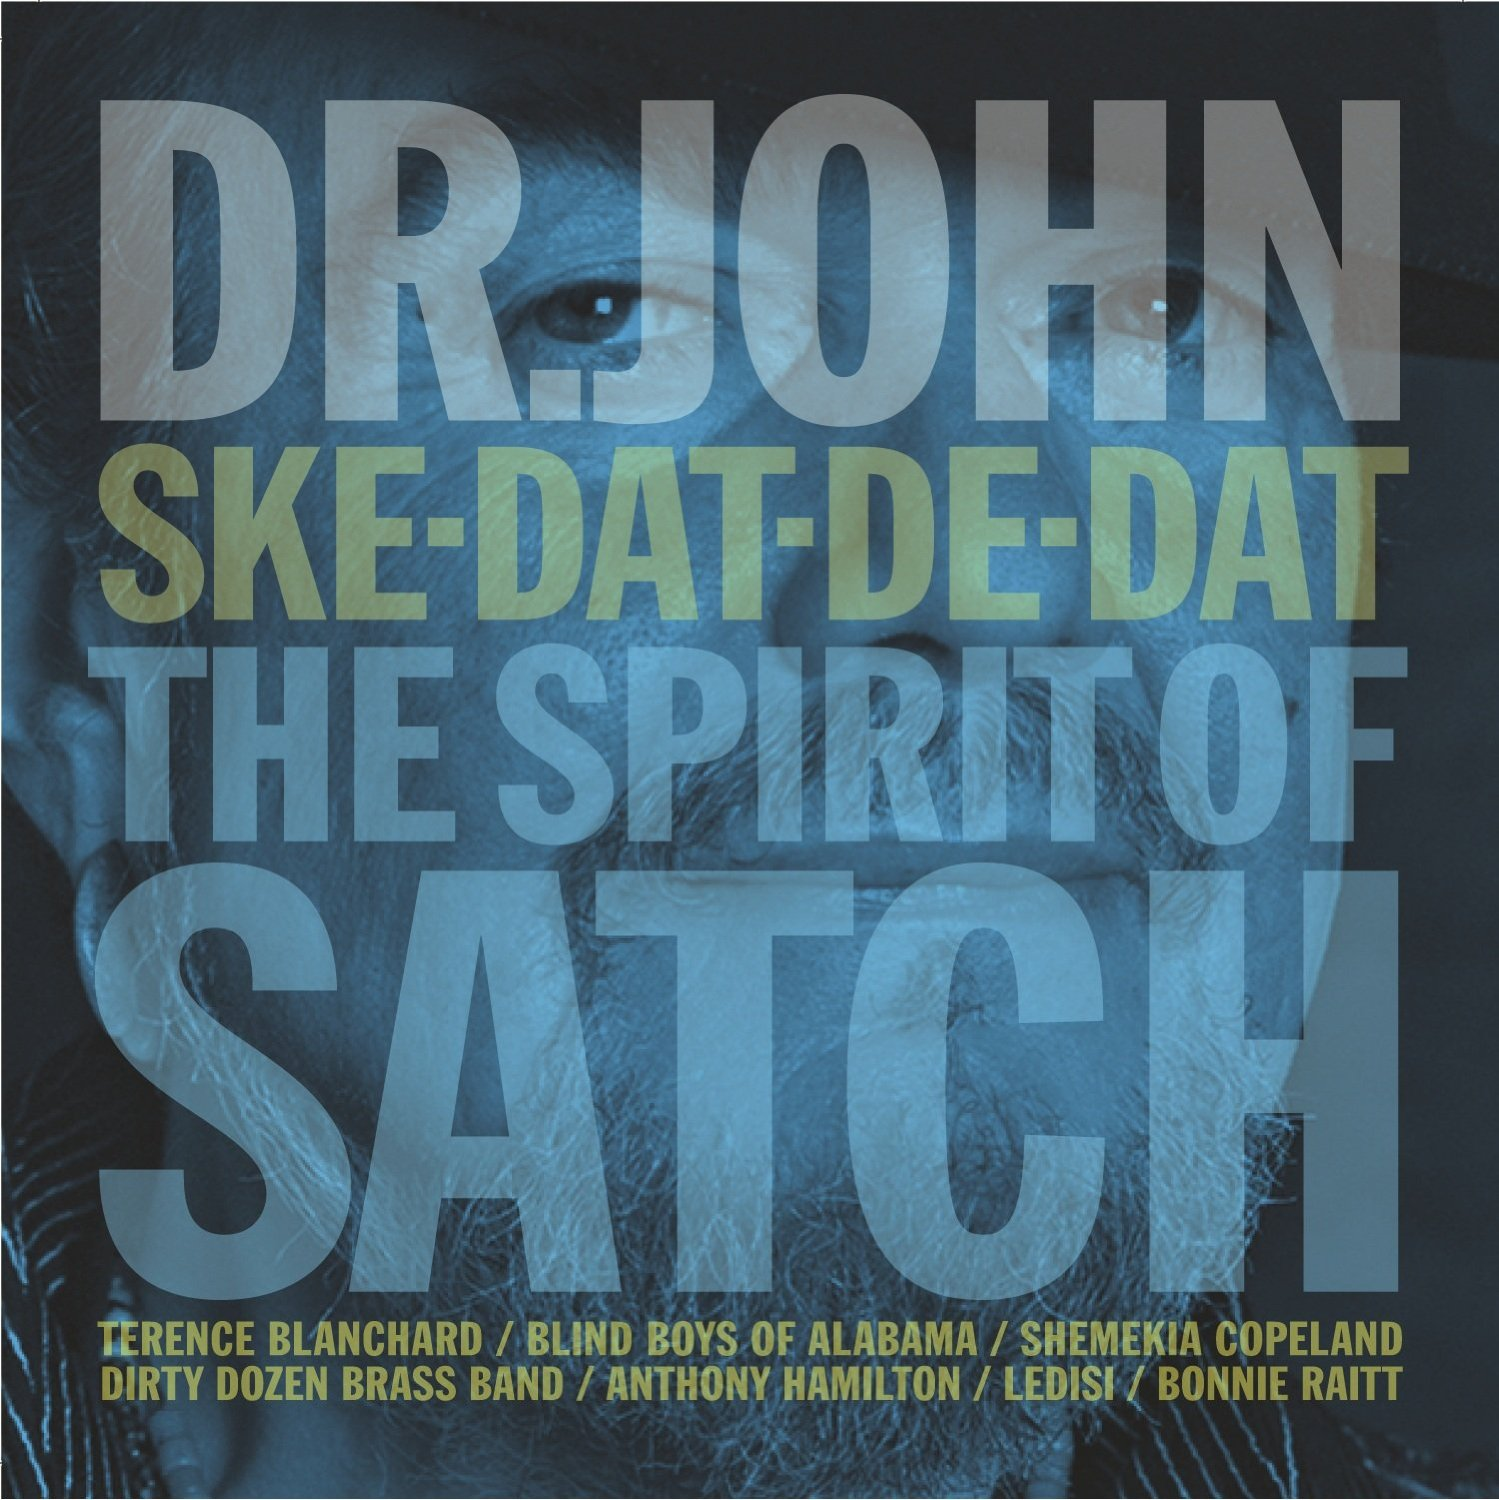 Ske-Dat-De-Dat The Spirit of Satch